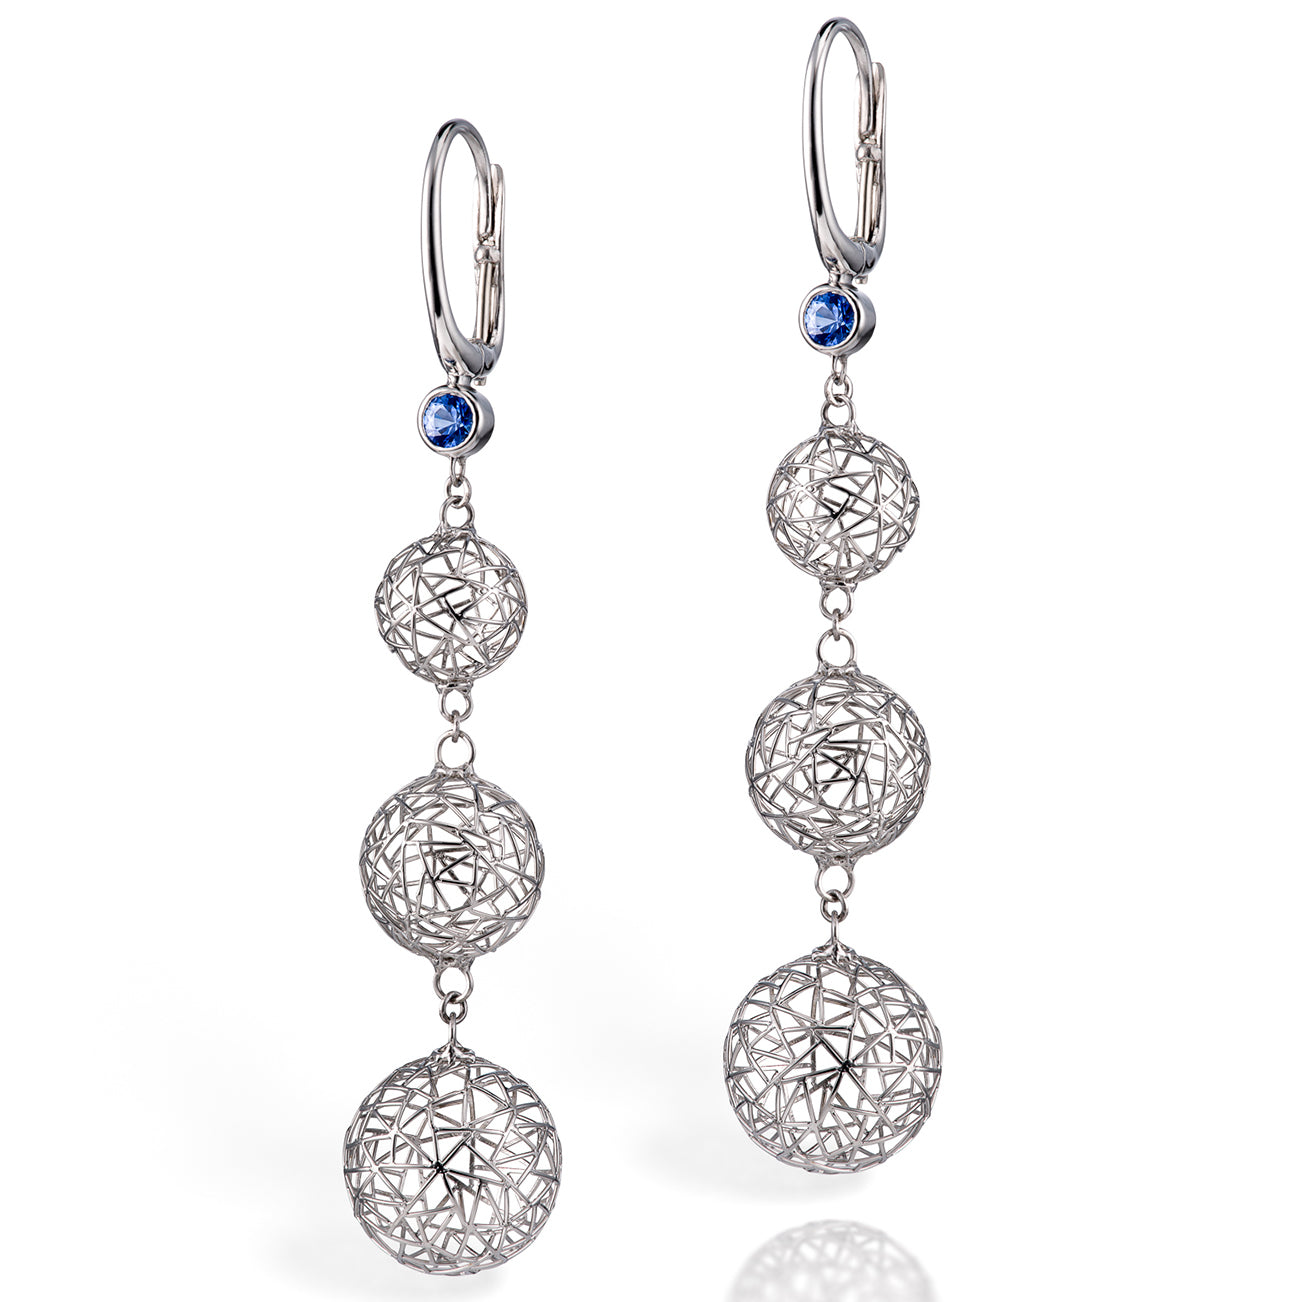 Gradual Bubble Earrings with Sapphires